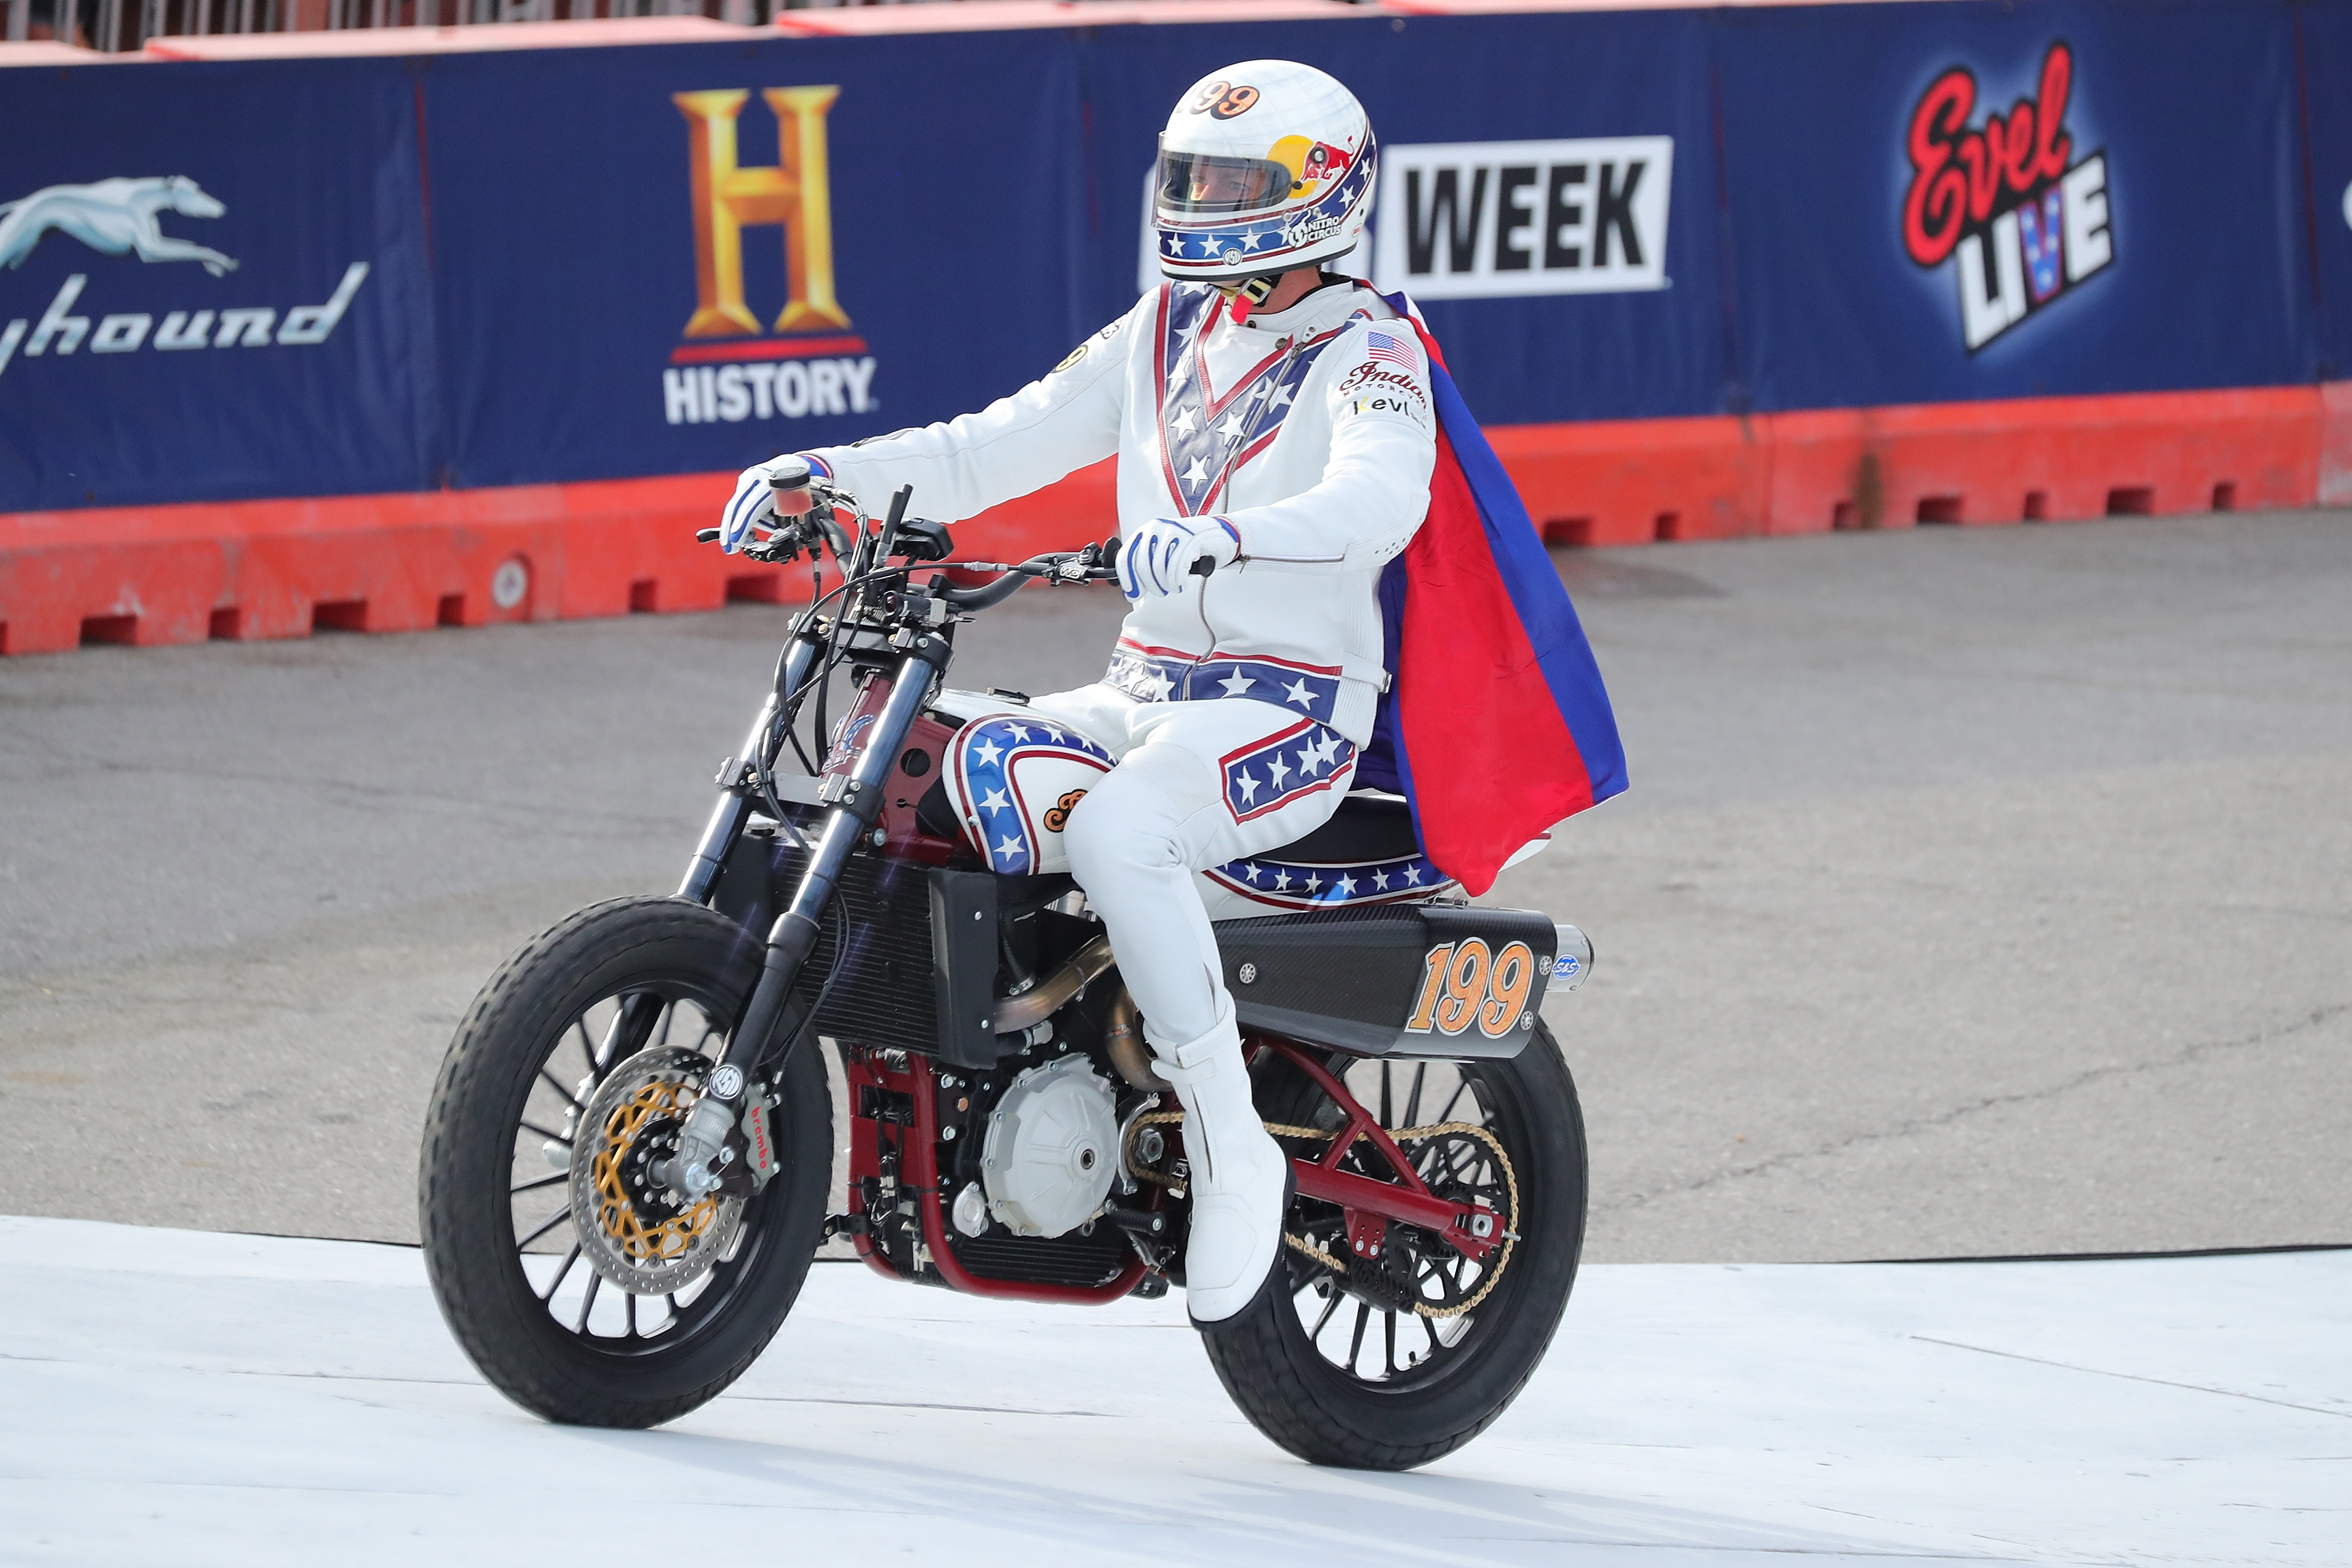 Travis-Pastrana-Evel-Knievel-Indian-Jump-b5a561a6